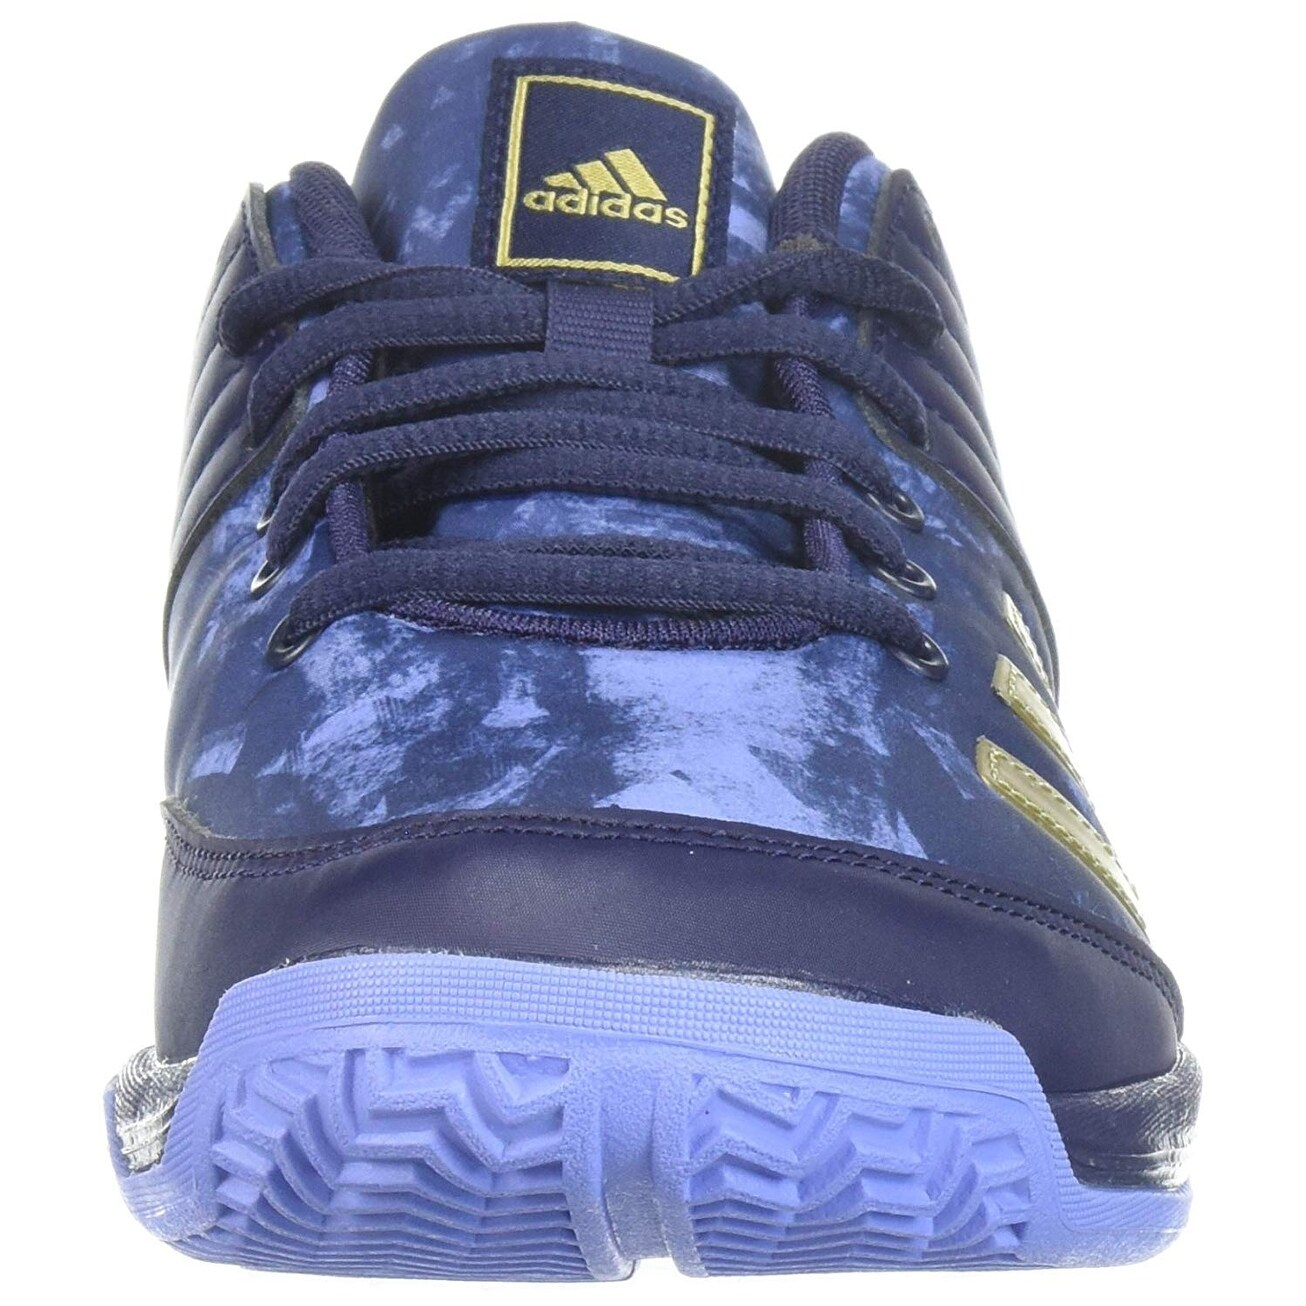 d4beeb82cb7 Shop adidas Women s Ligra 5 W Tennis Shoe - Free Shipping On Orders Over   45 - Overstock.com - 22722530